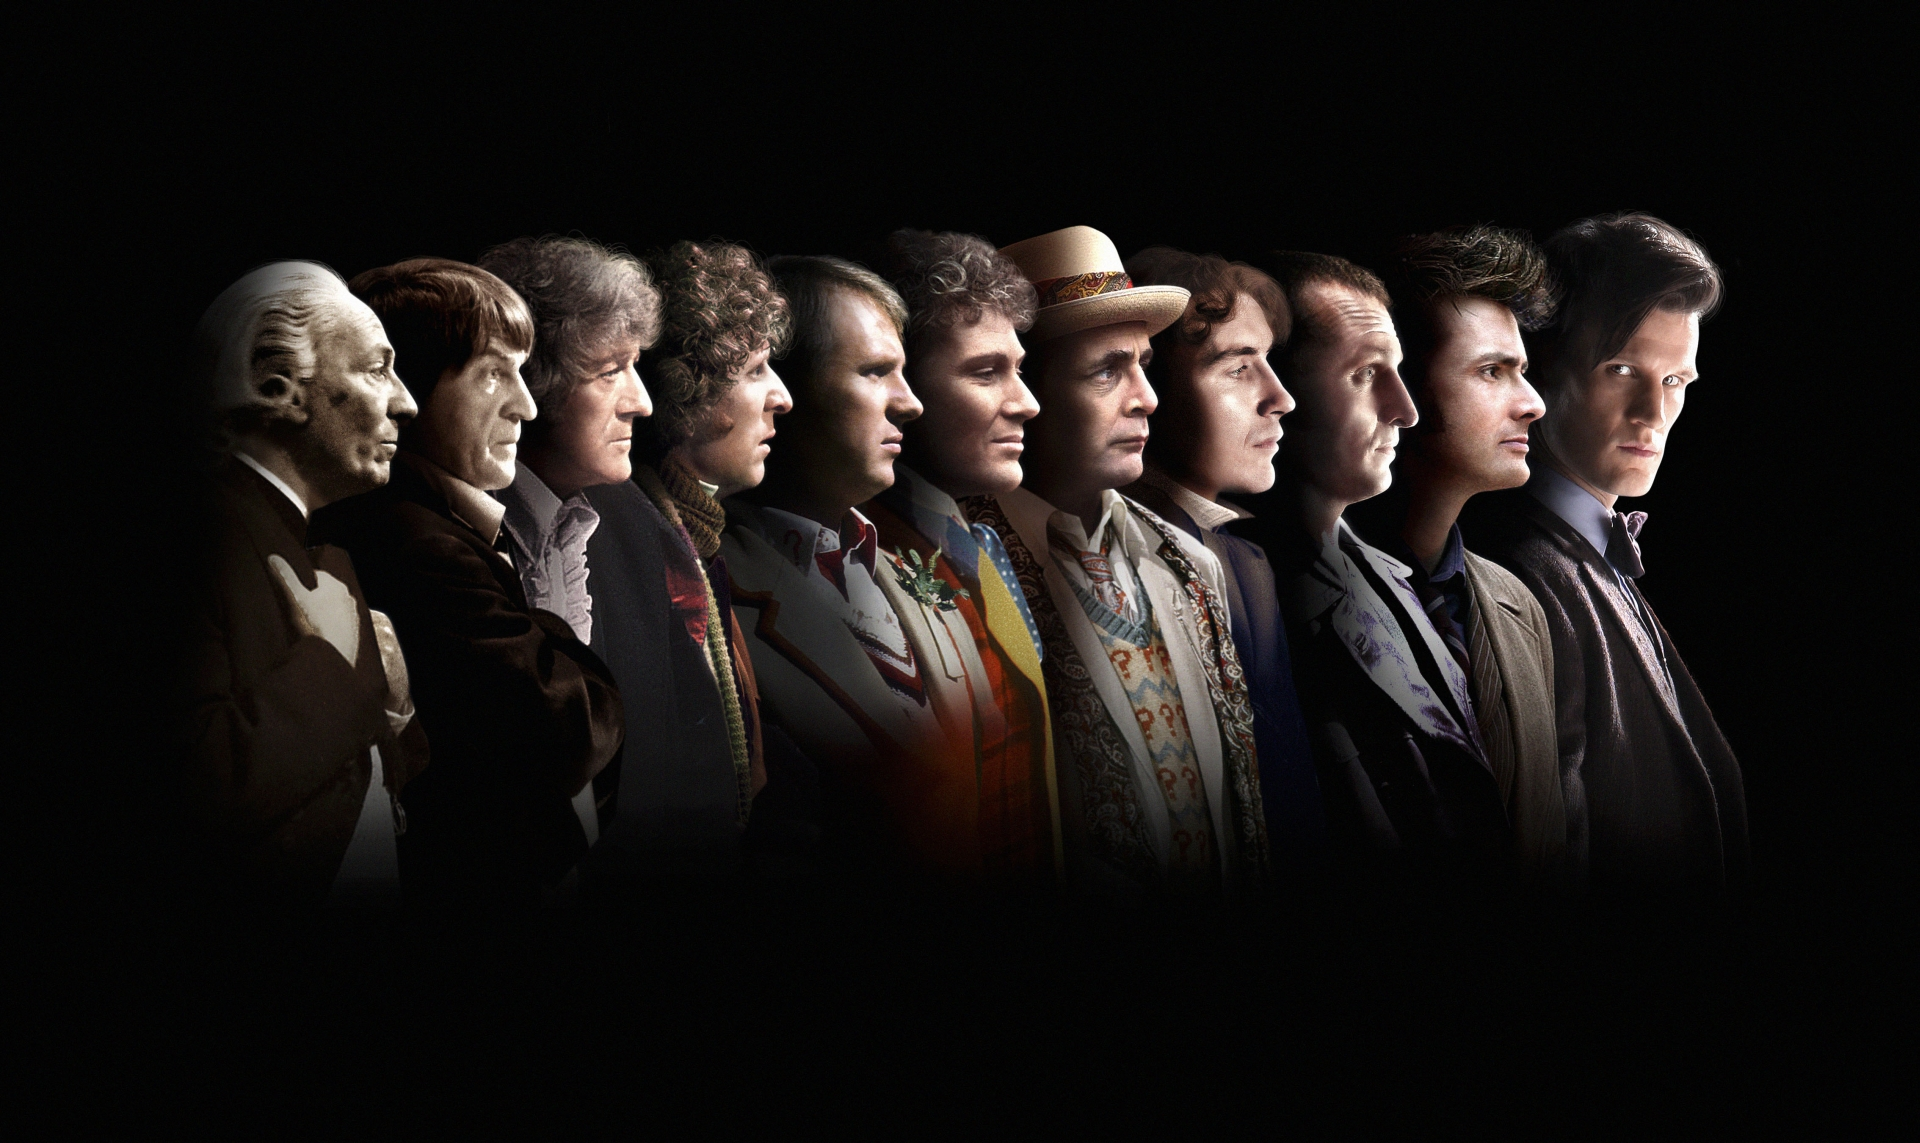 The Eleven Doctors: Celebrating 50 Years of Doctor Who (Credit: BBC/Matt Burlem)